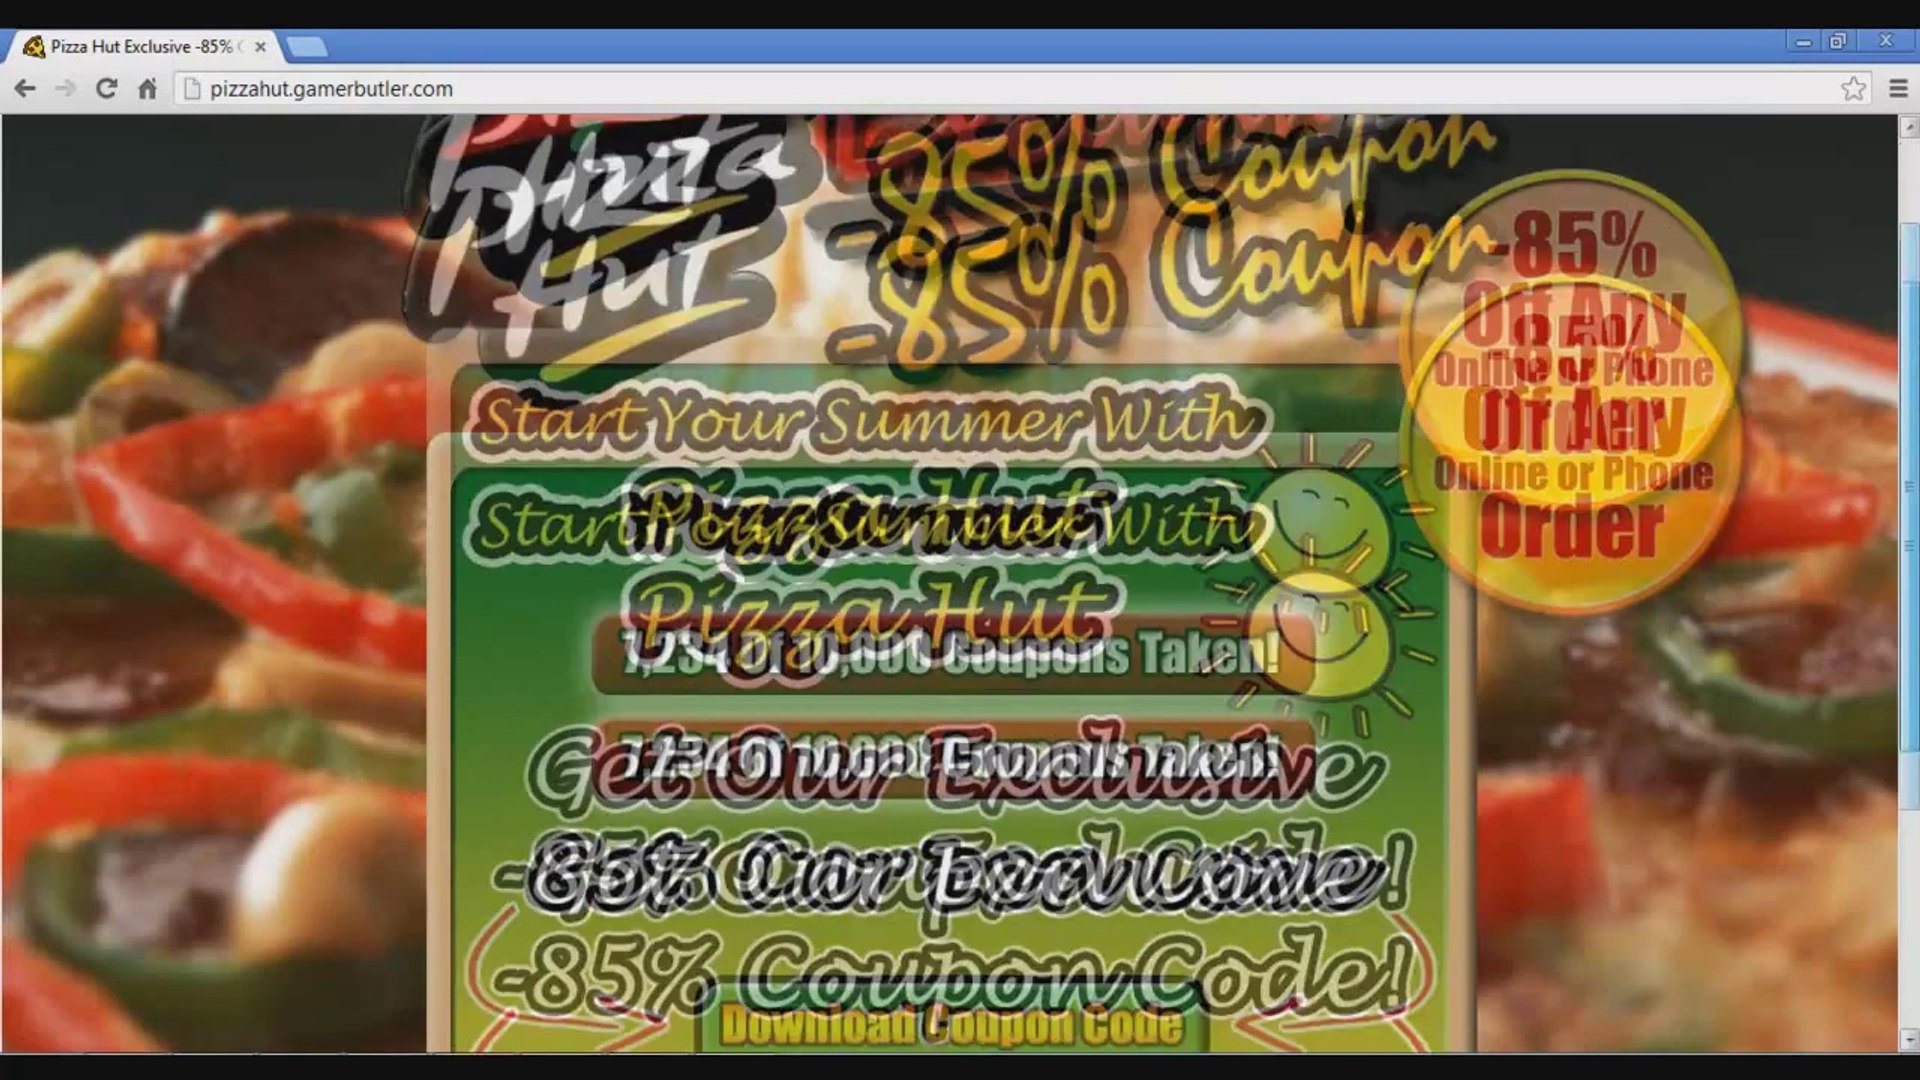 Pizza Hut Coupons Get - DISCOUNT Pizza Hut Coupons Codes Free Mobile and Fast Food Coupons